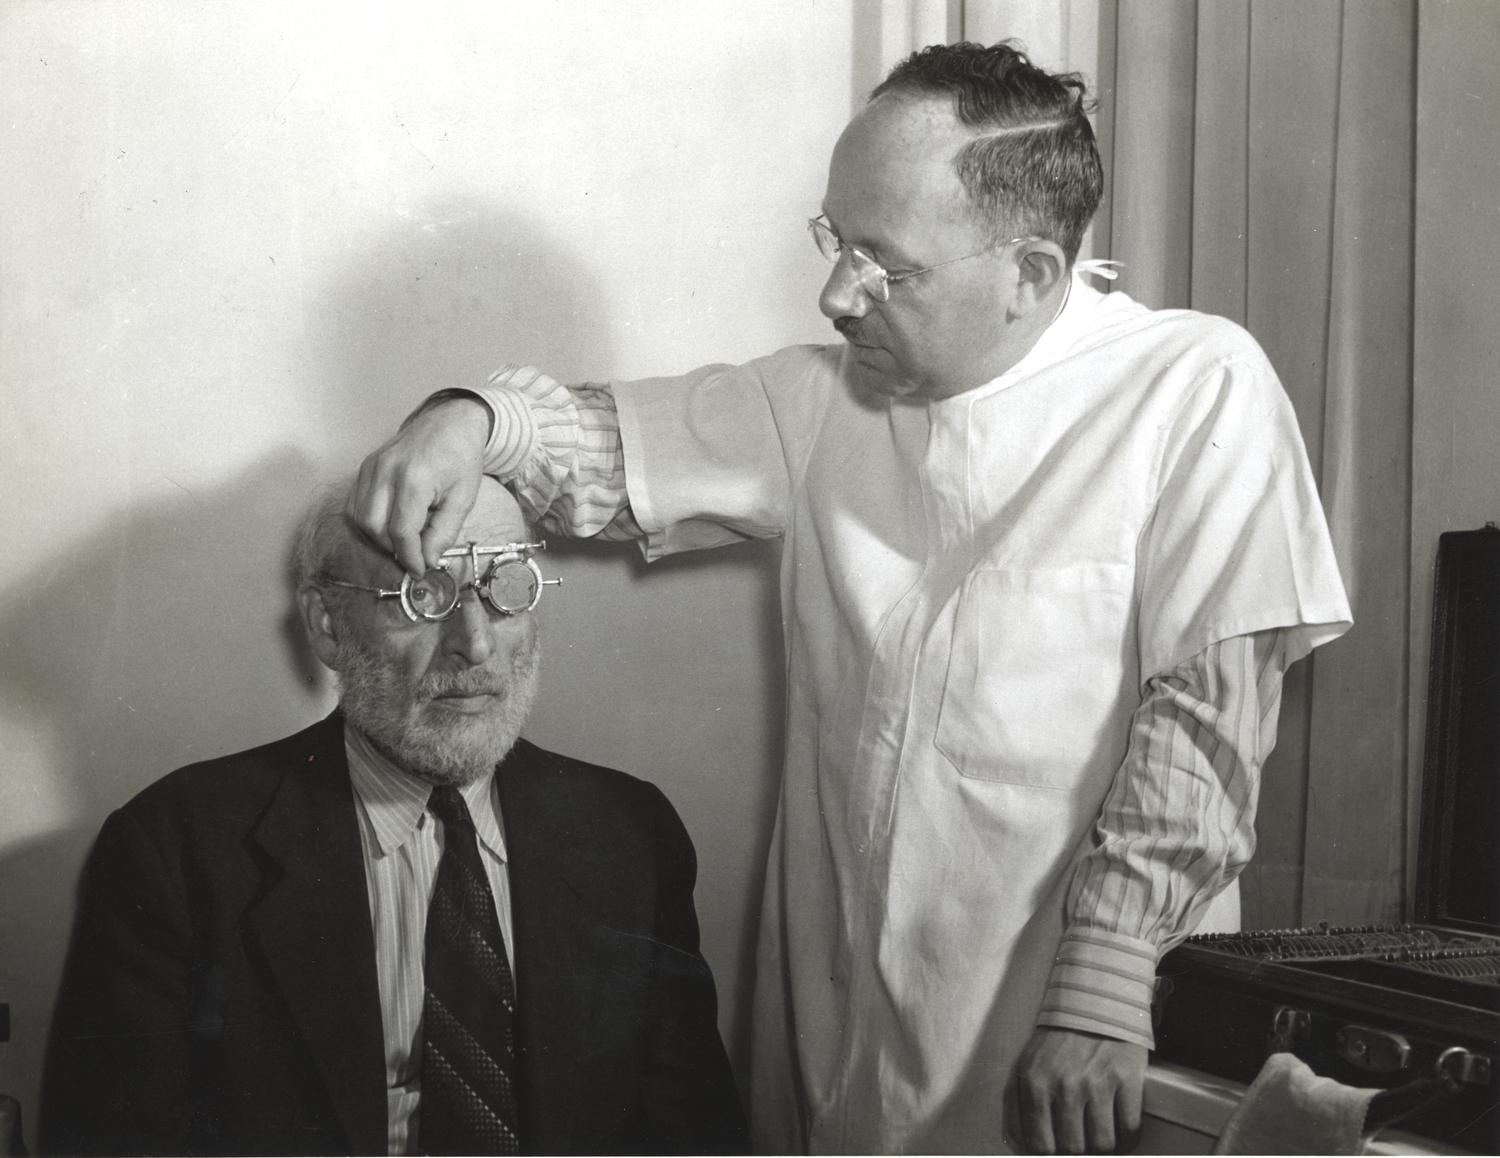 Doctor giving eye test to an older man